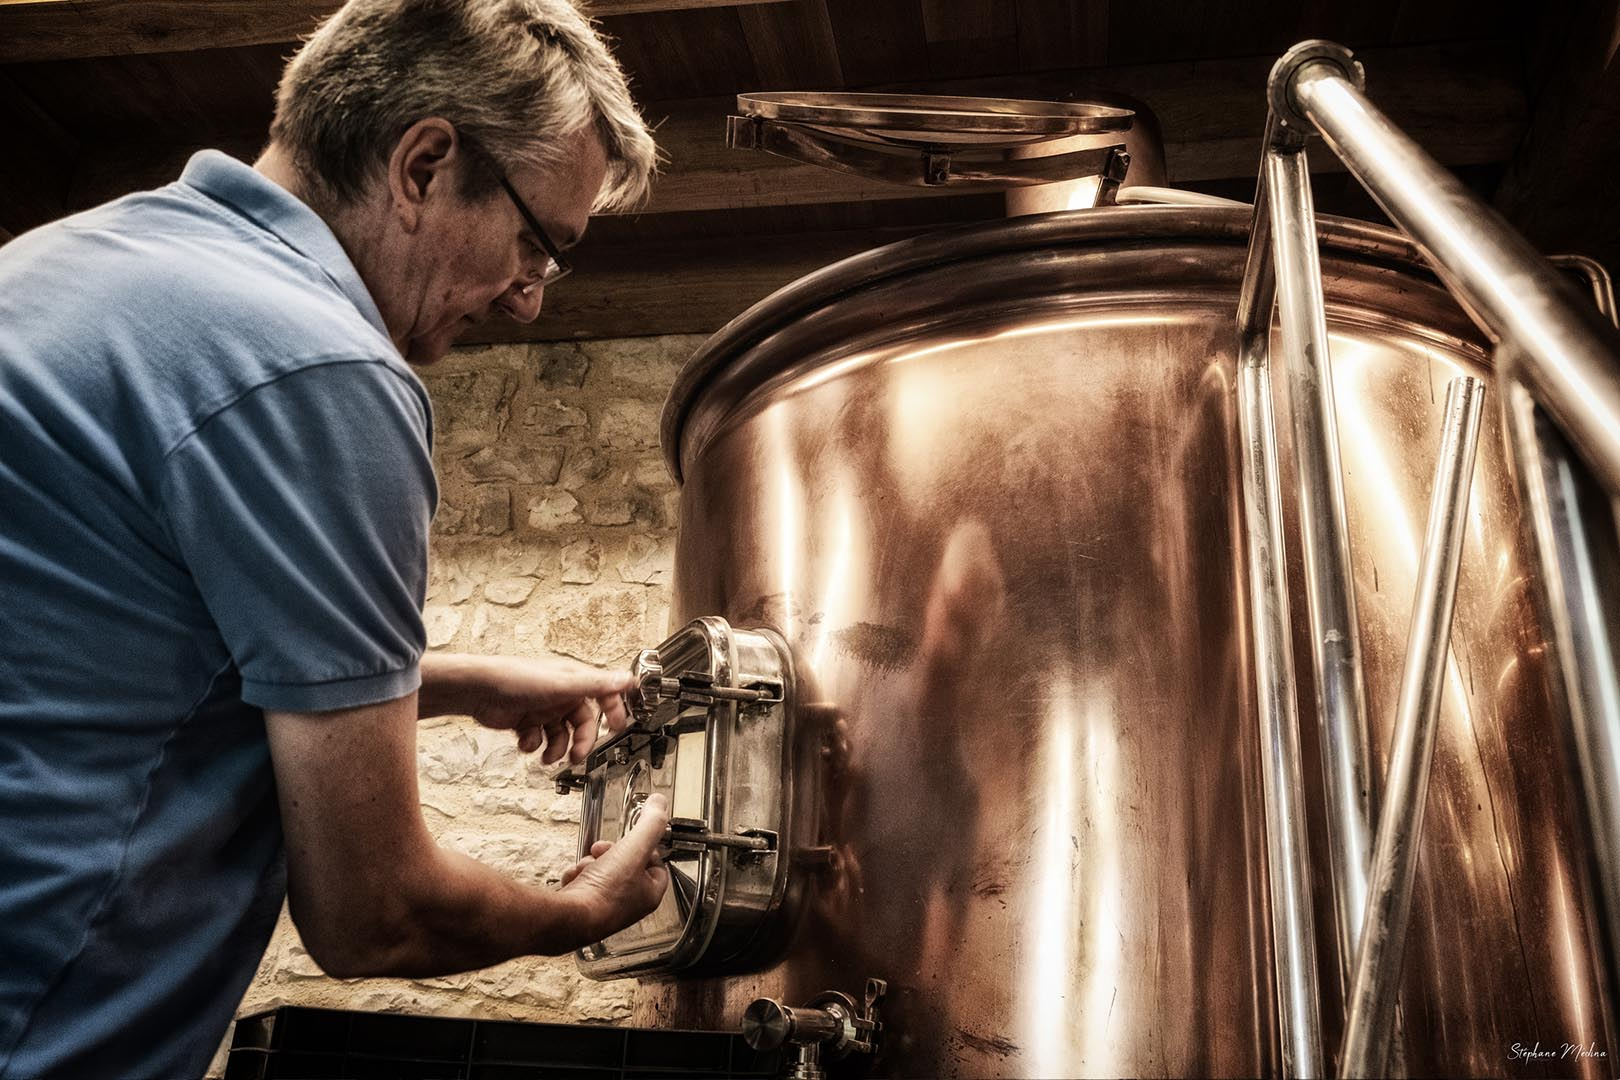 Brasserie Artisanale de Puycelsi: A brewery with a difference in one of France's most beautiful villages, Discover Southern Europe magazine